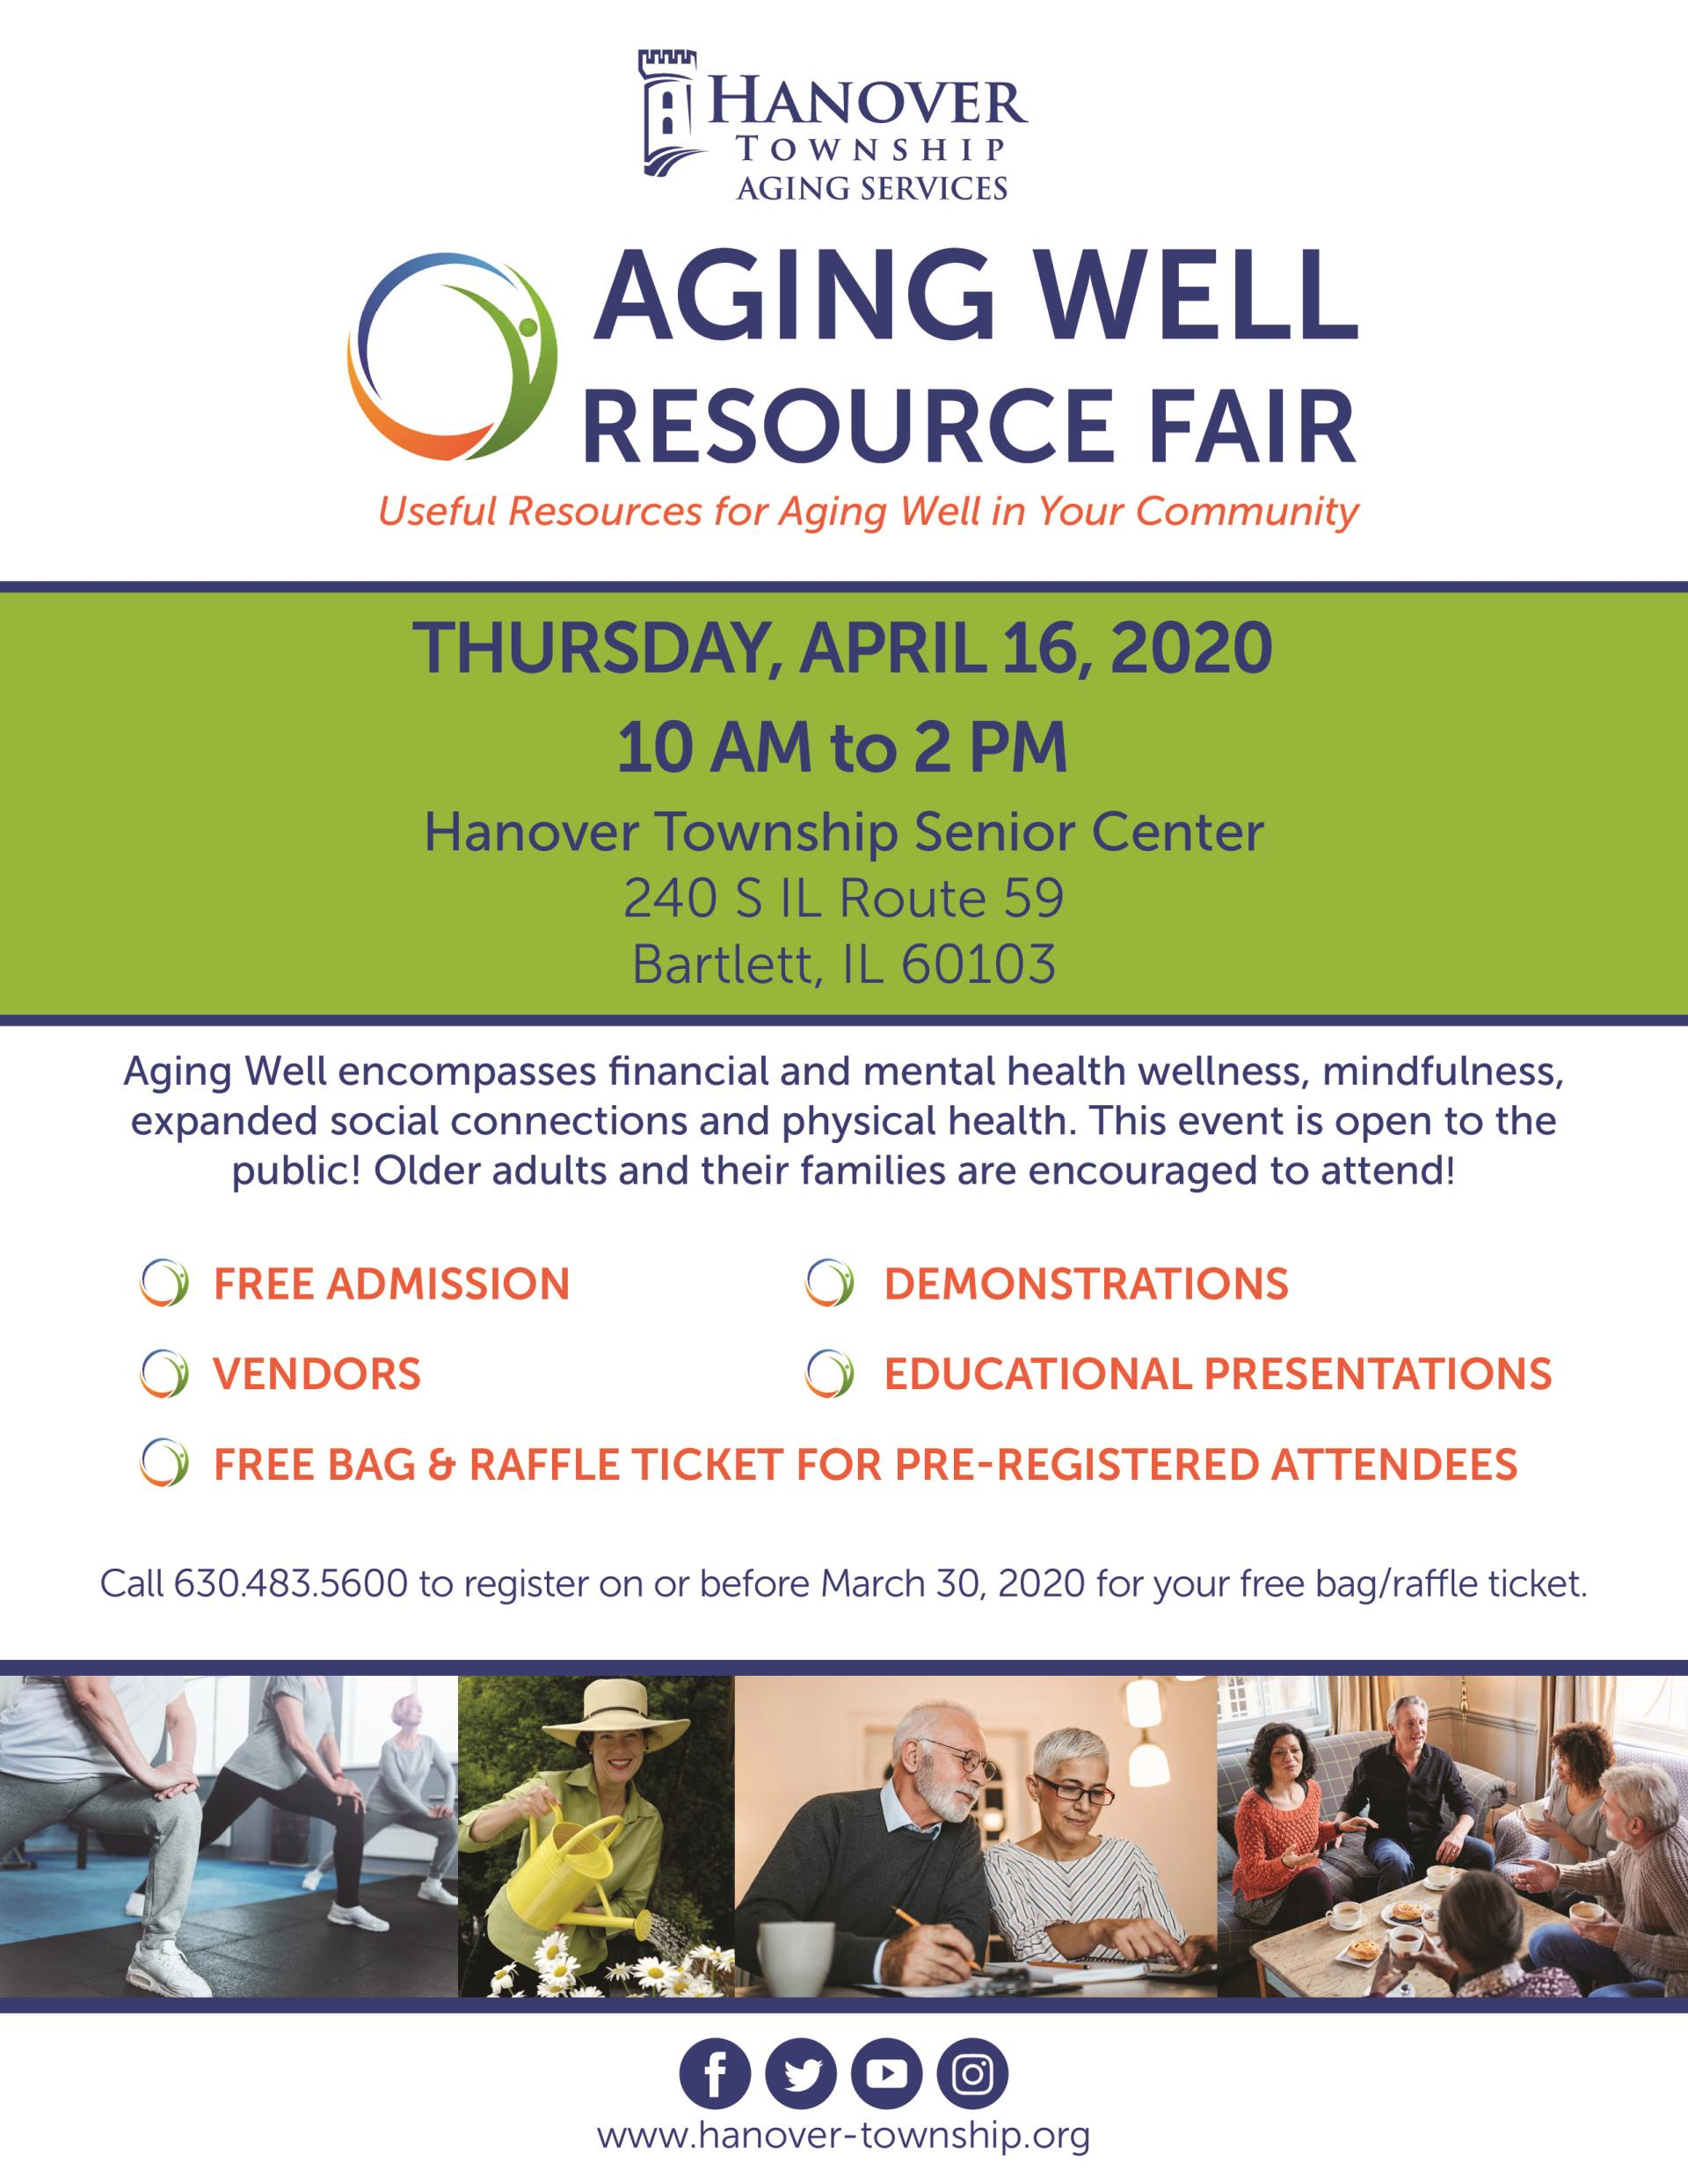 HT Aging Well Resource Fair Flyer_R03-page-0